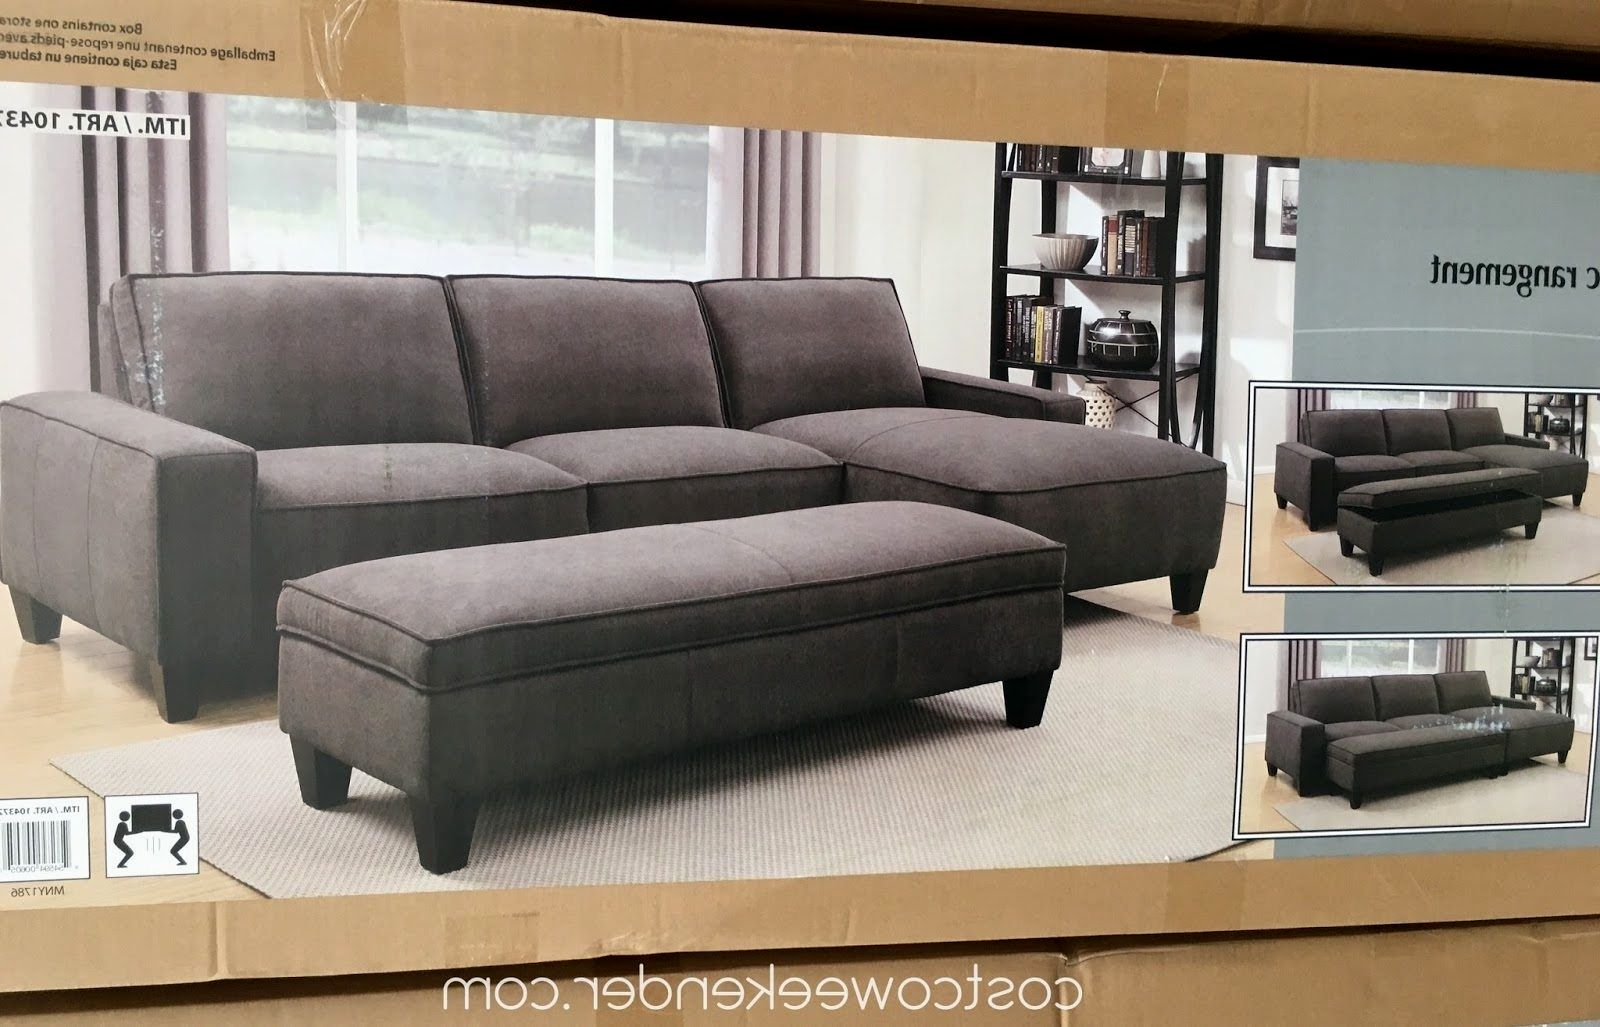 fantastic small sectional sofas concept-Luxury Small Sectional sofas Plan